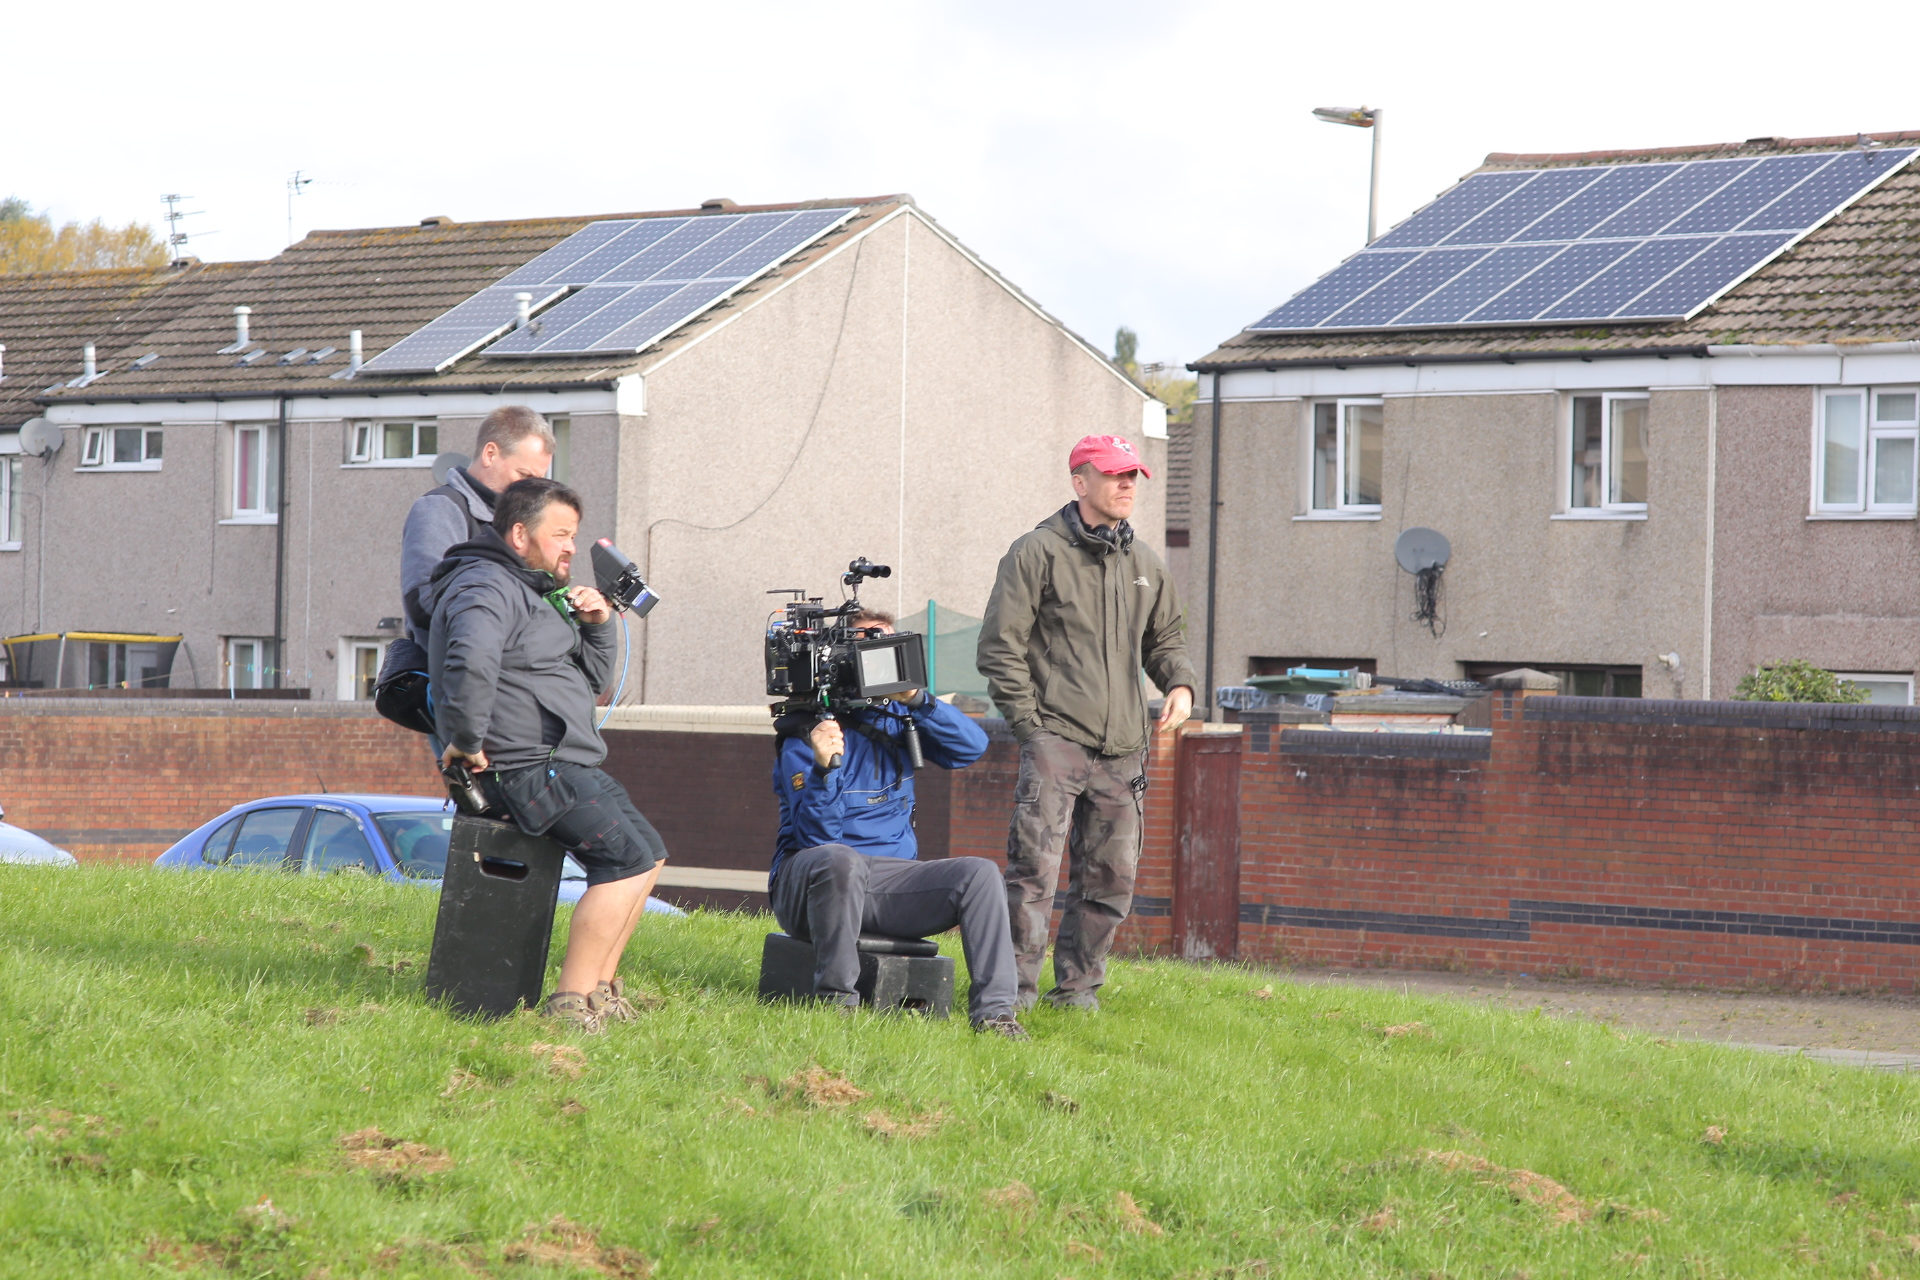 An image from production on Little Boy Blue